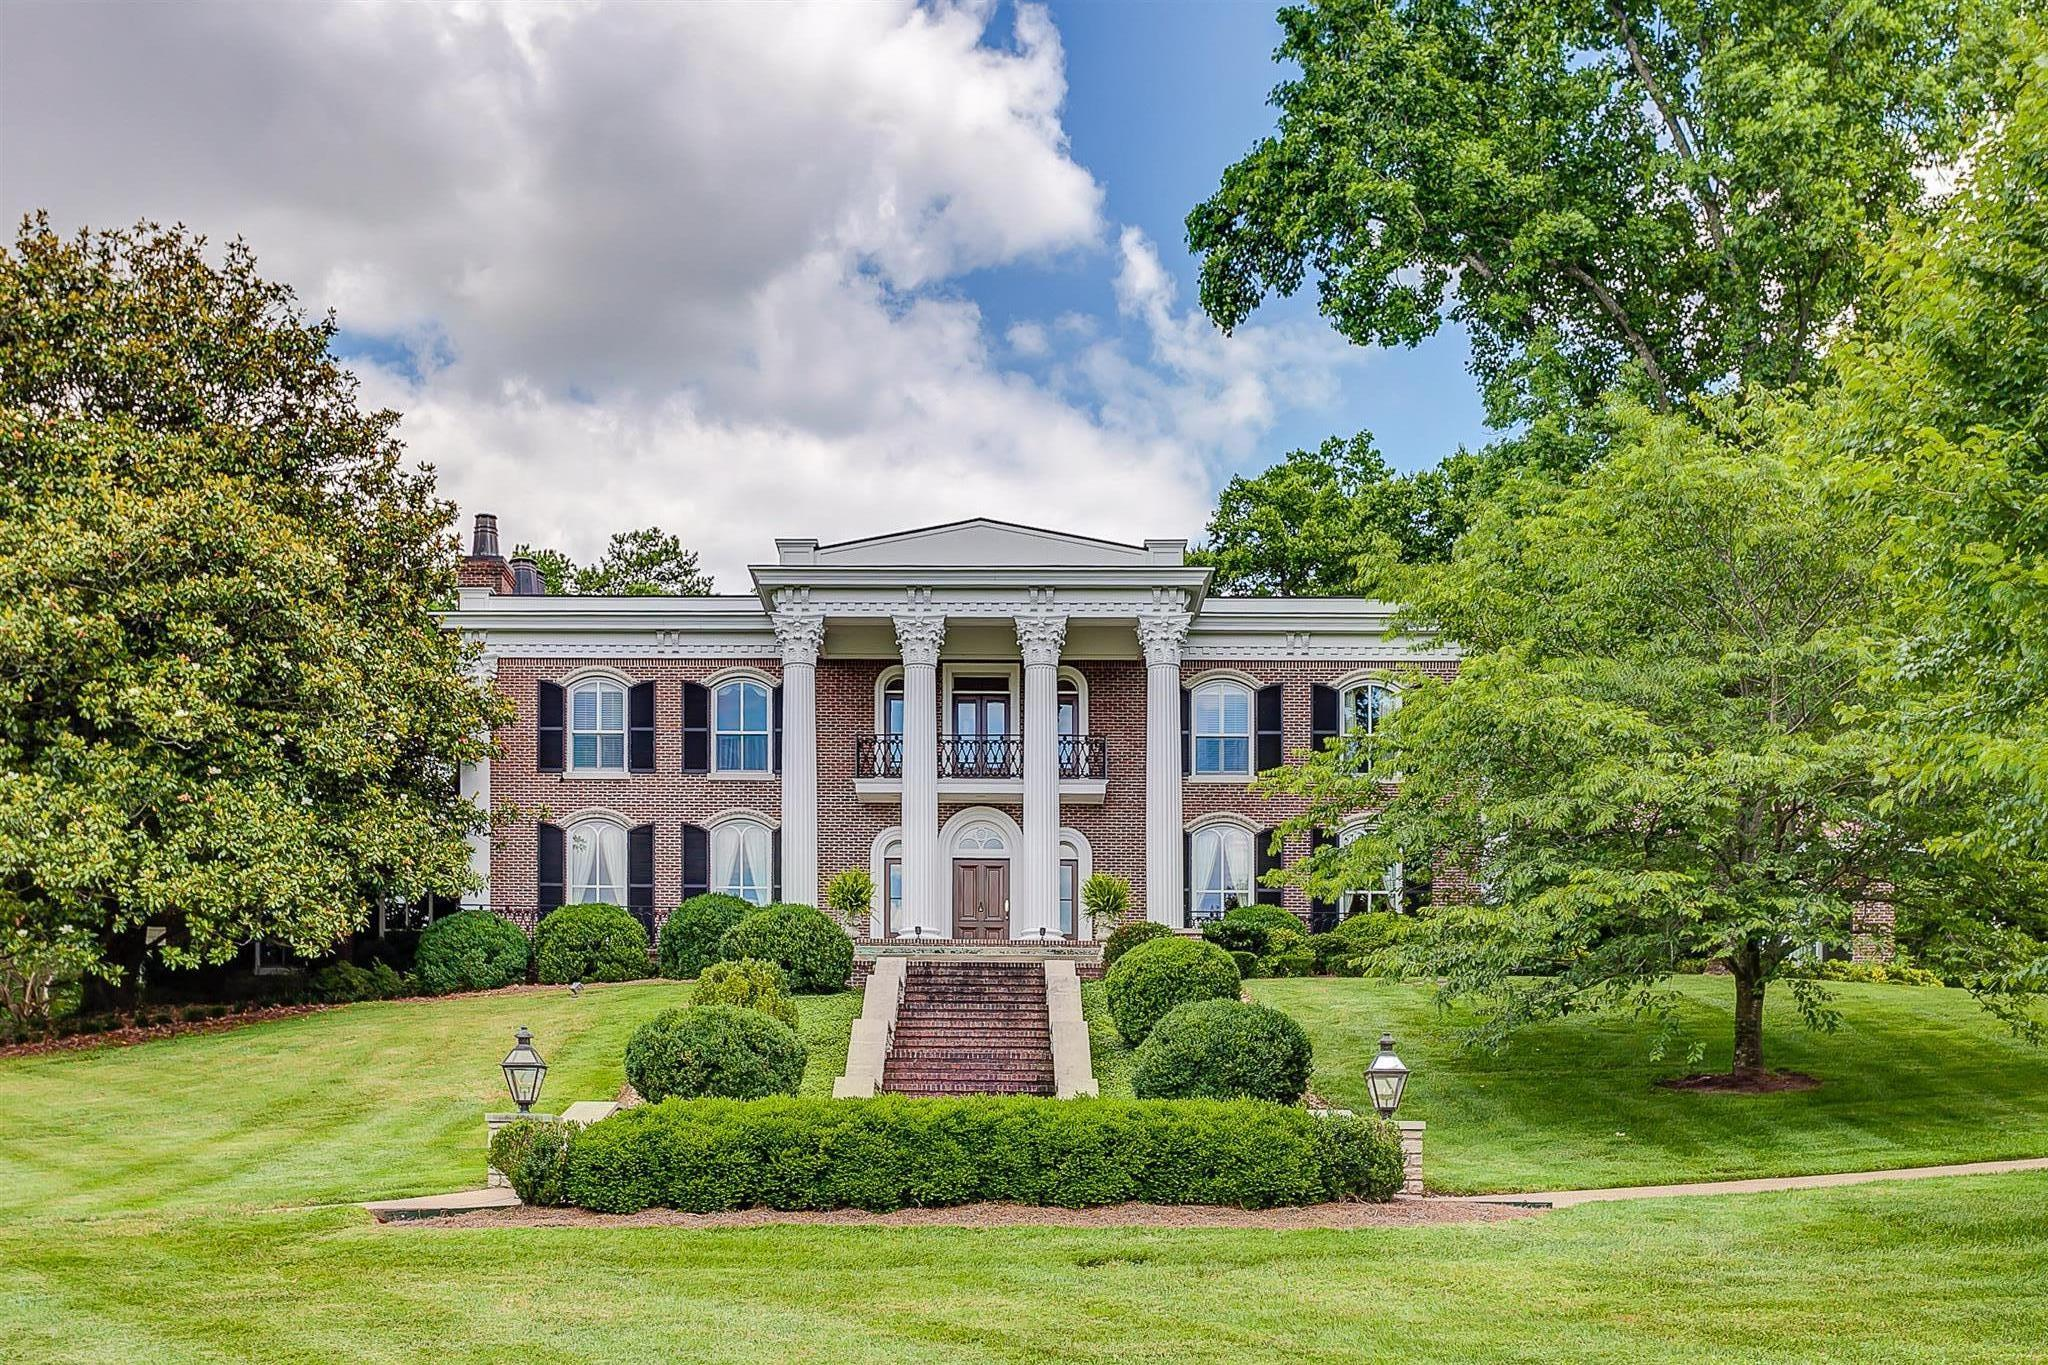 Touched  by Tradition & Timeless Elegance. This fine home has entertained governors and past presidents. A truly elegant estate that whispers Southern Charm rests on 2.4 pristine acres with every attention to detail. One of a kind must see home.